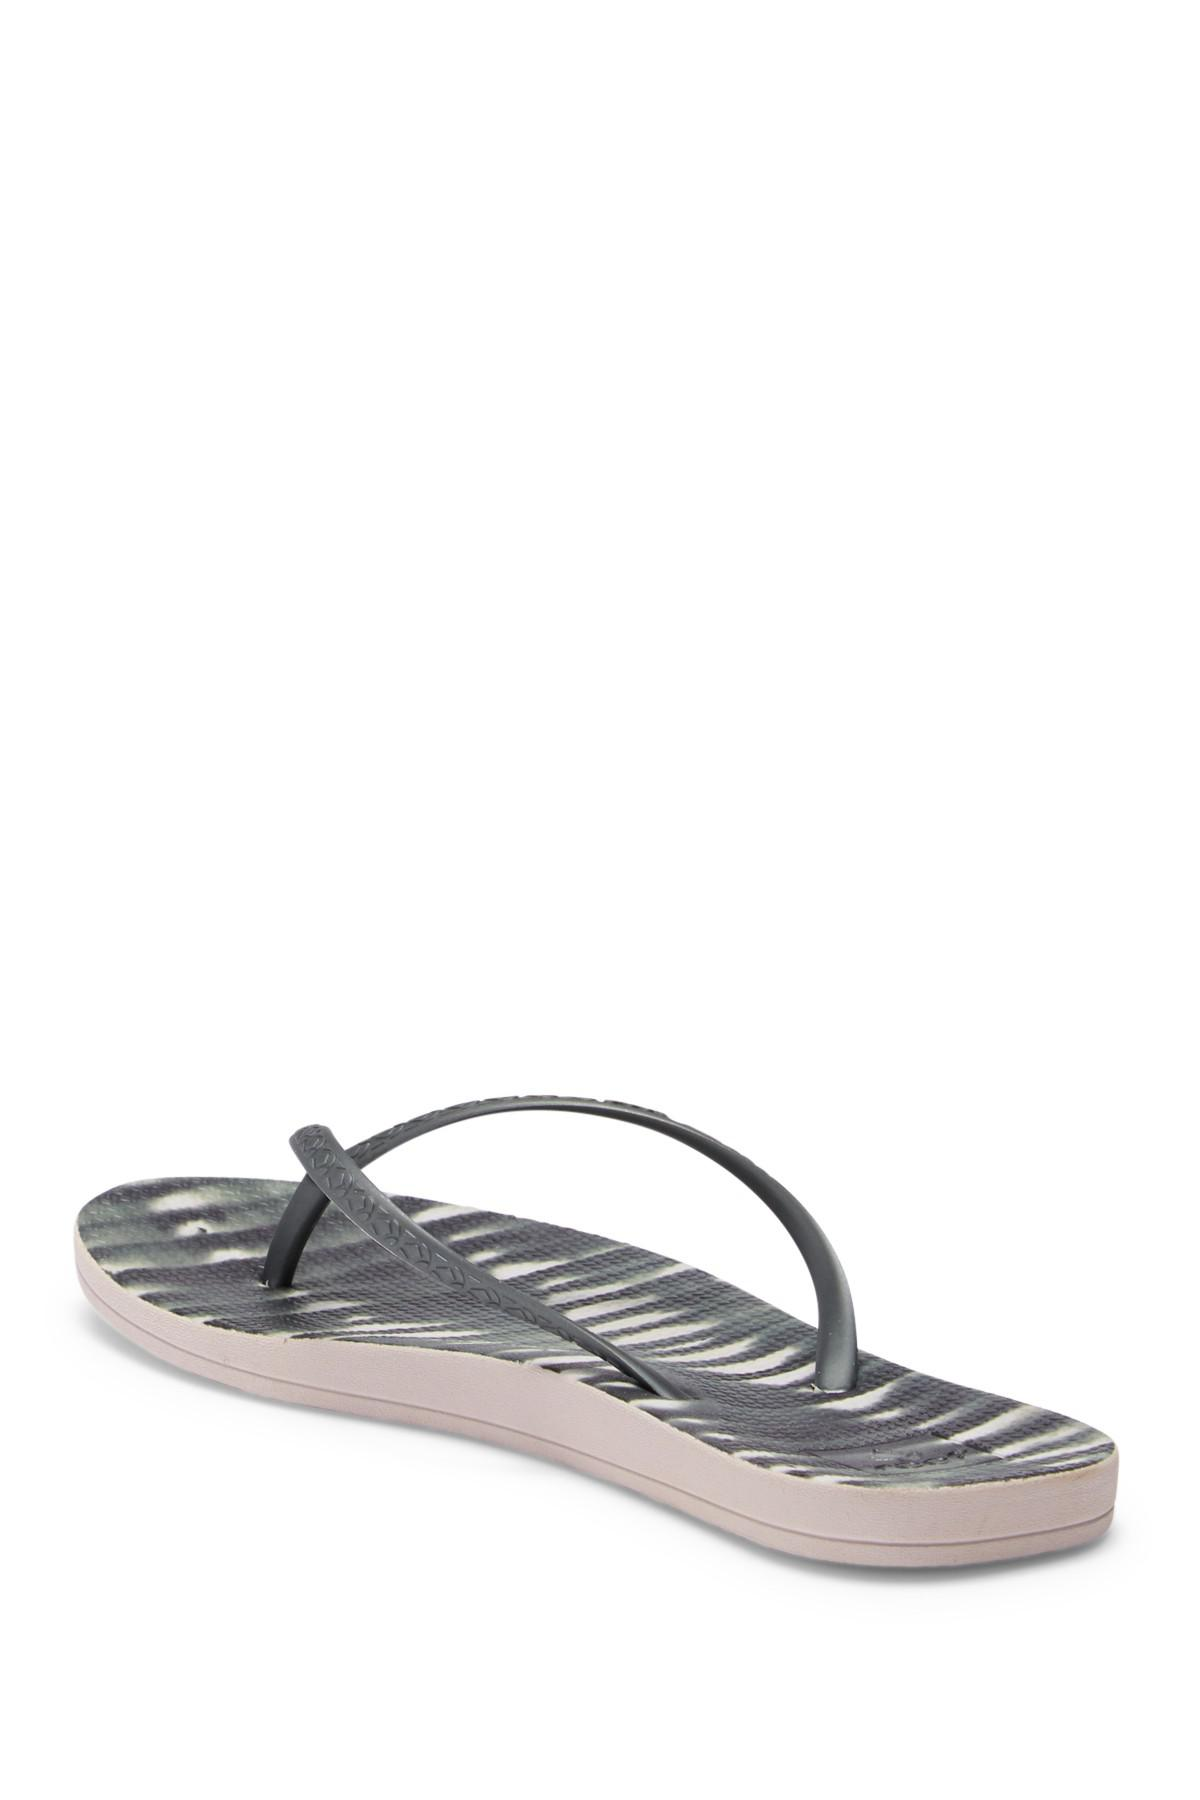 8410bfa1cfd75 Lyst - Reef Escape Lux Printed Thong Sandal in Black - Save ...